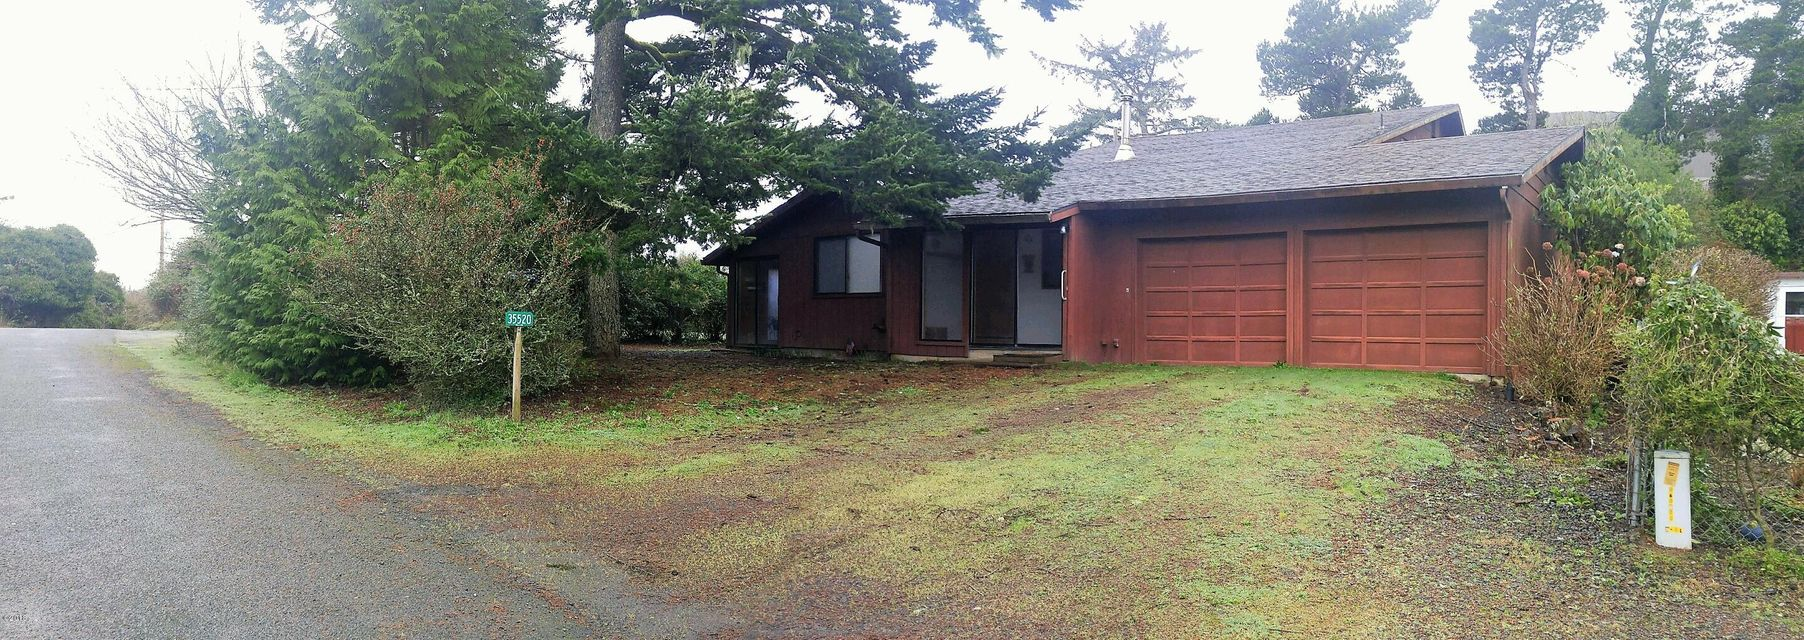 35520 Stephens Ave, Pacific City, OR 97135 - from street